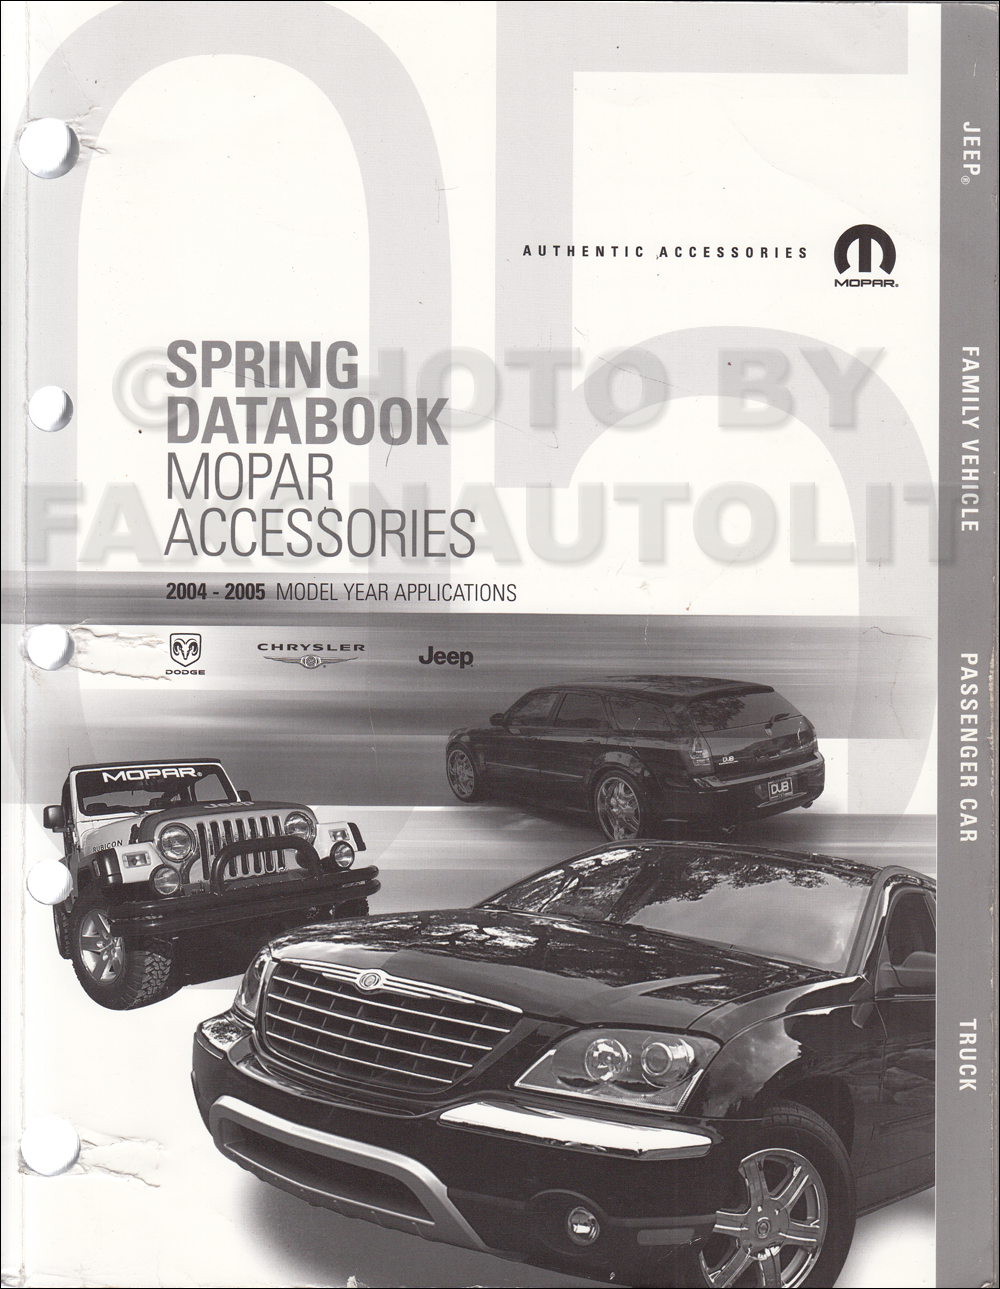 2004-2005 MoPar Accessories Databook Original Spring